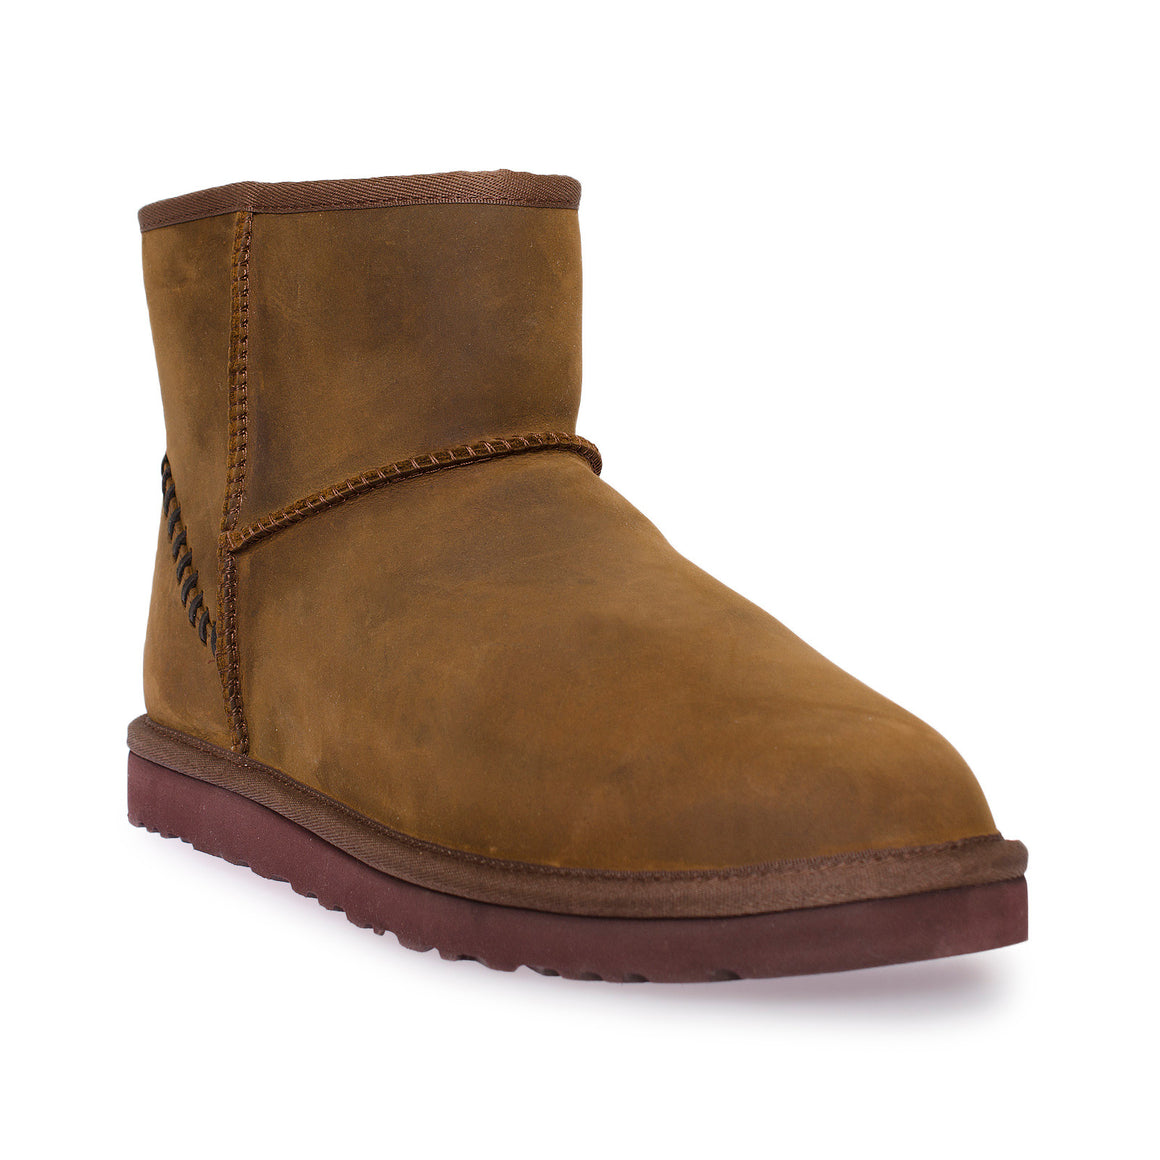 UGG Classic Mini Deco Leather Chestnut Boots - Men's